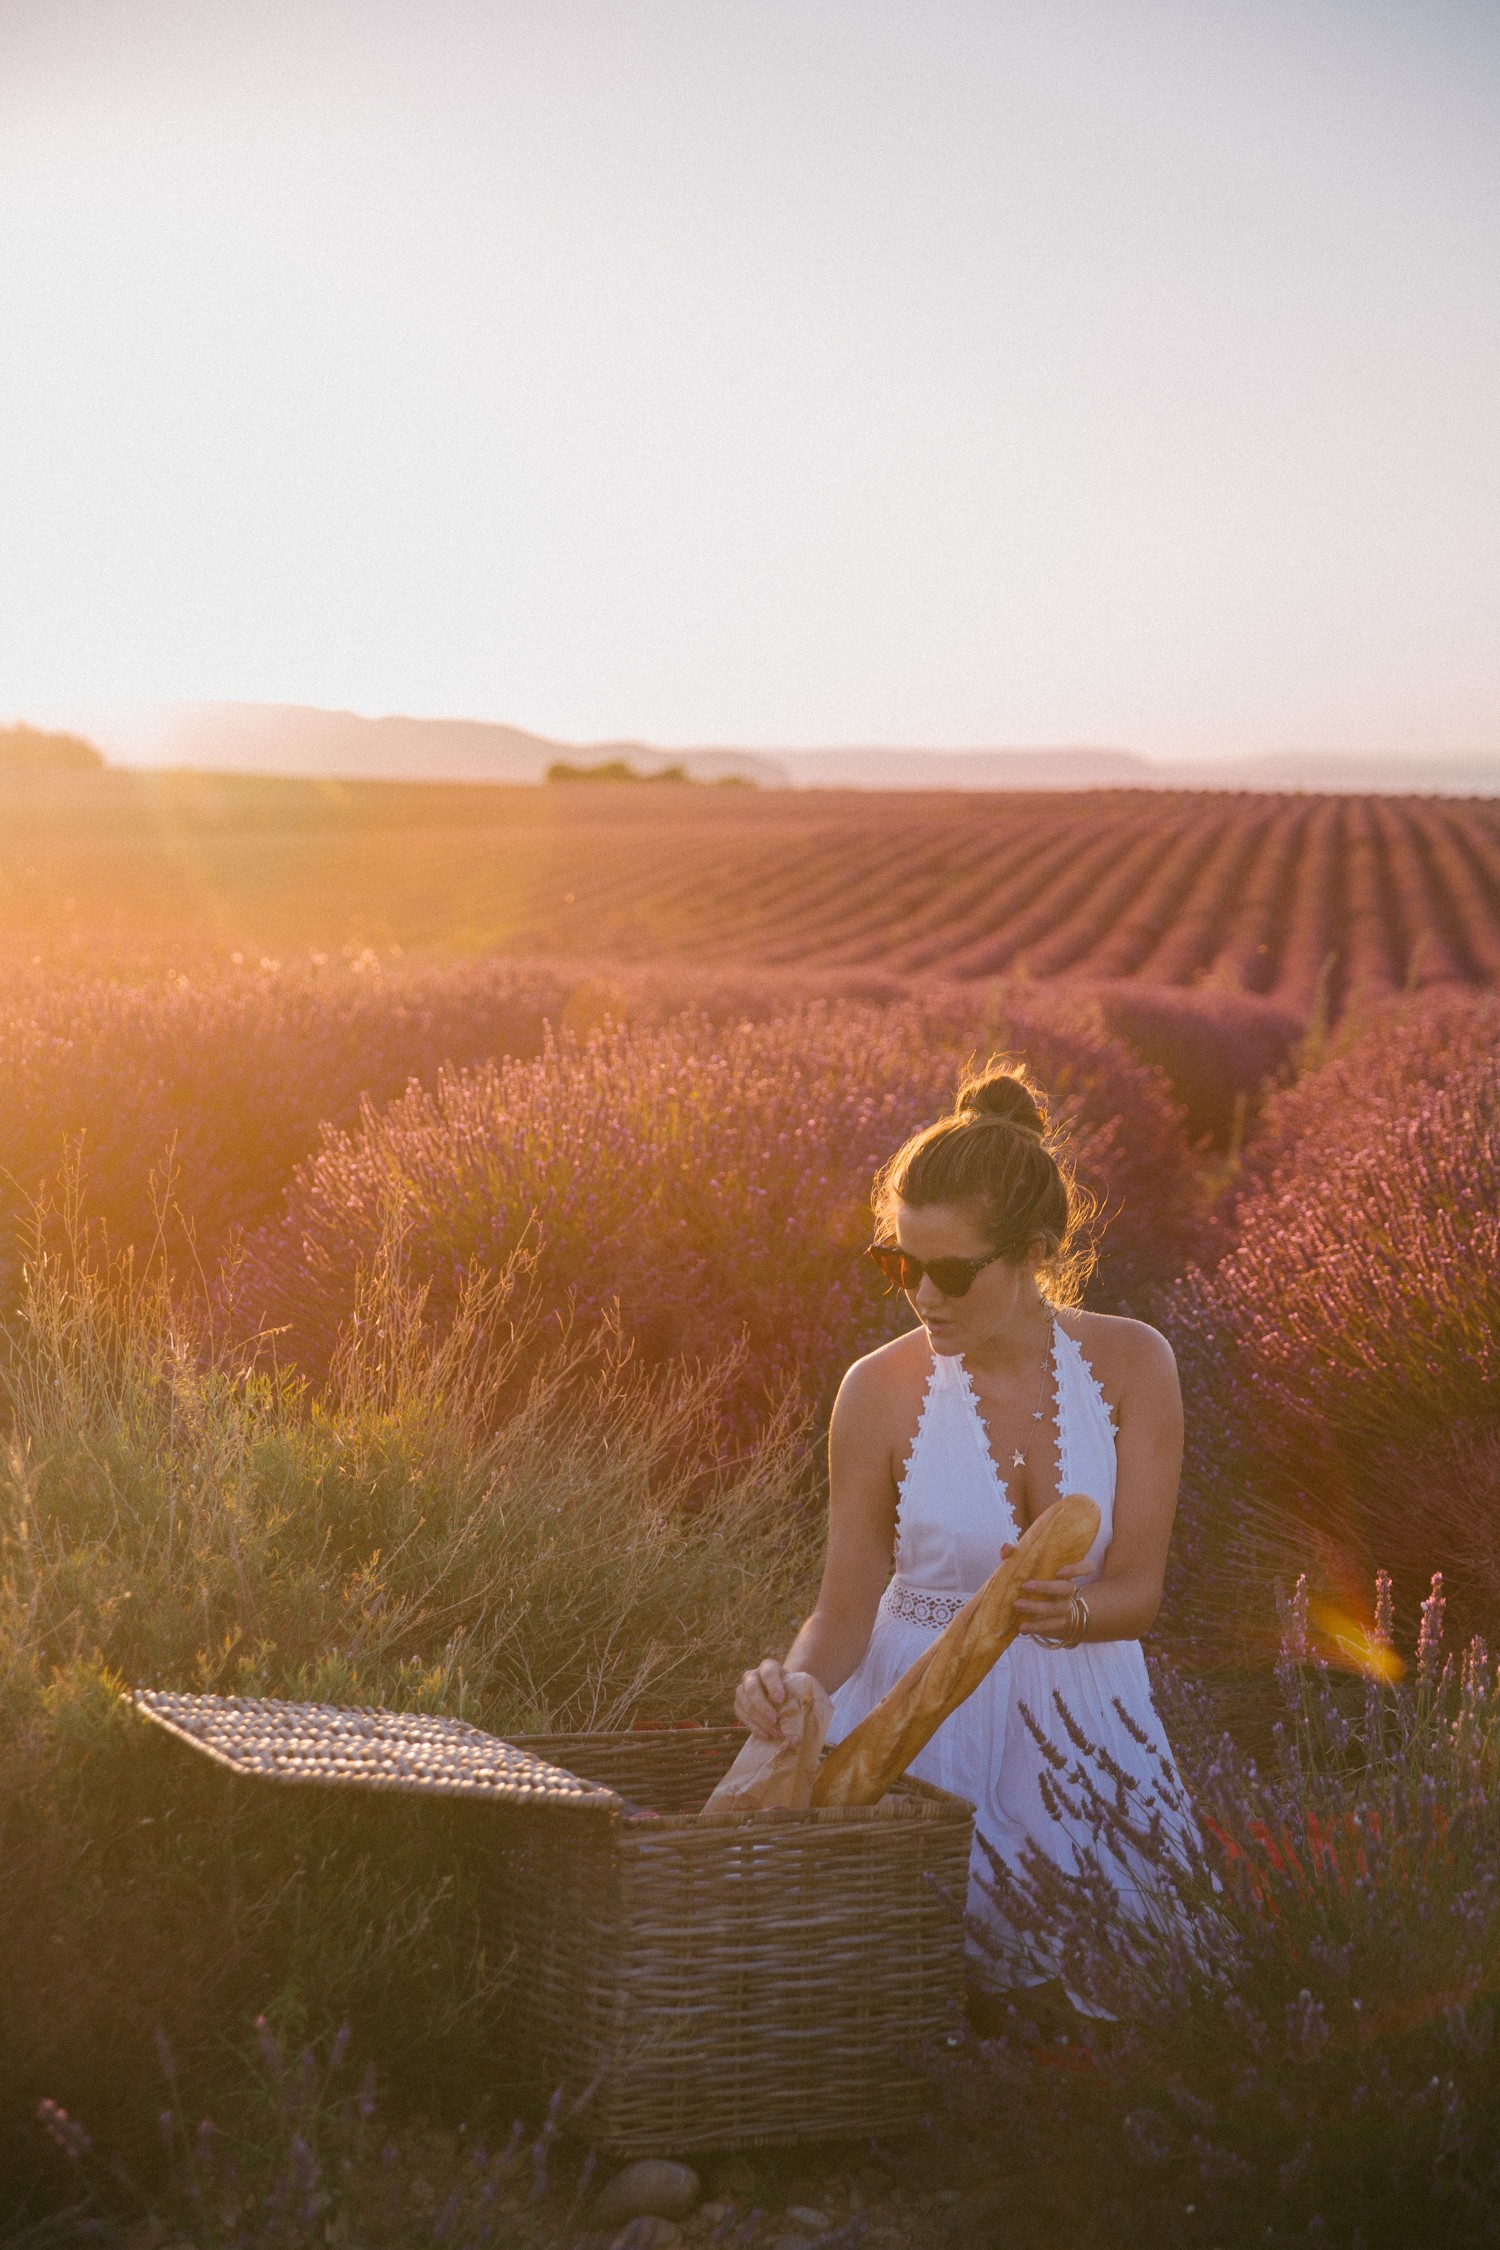 Sunset picnic in Provence